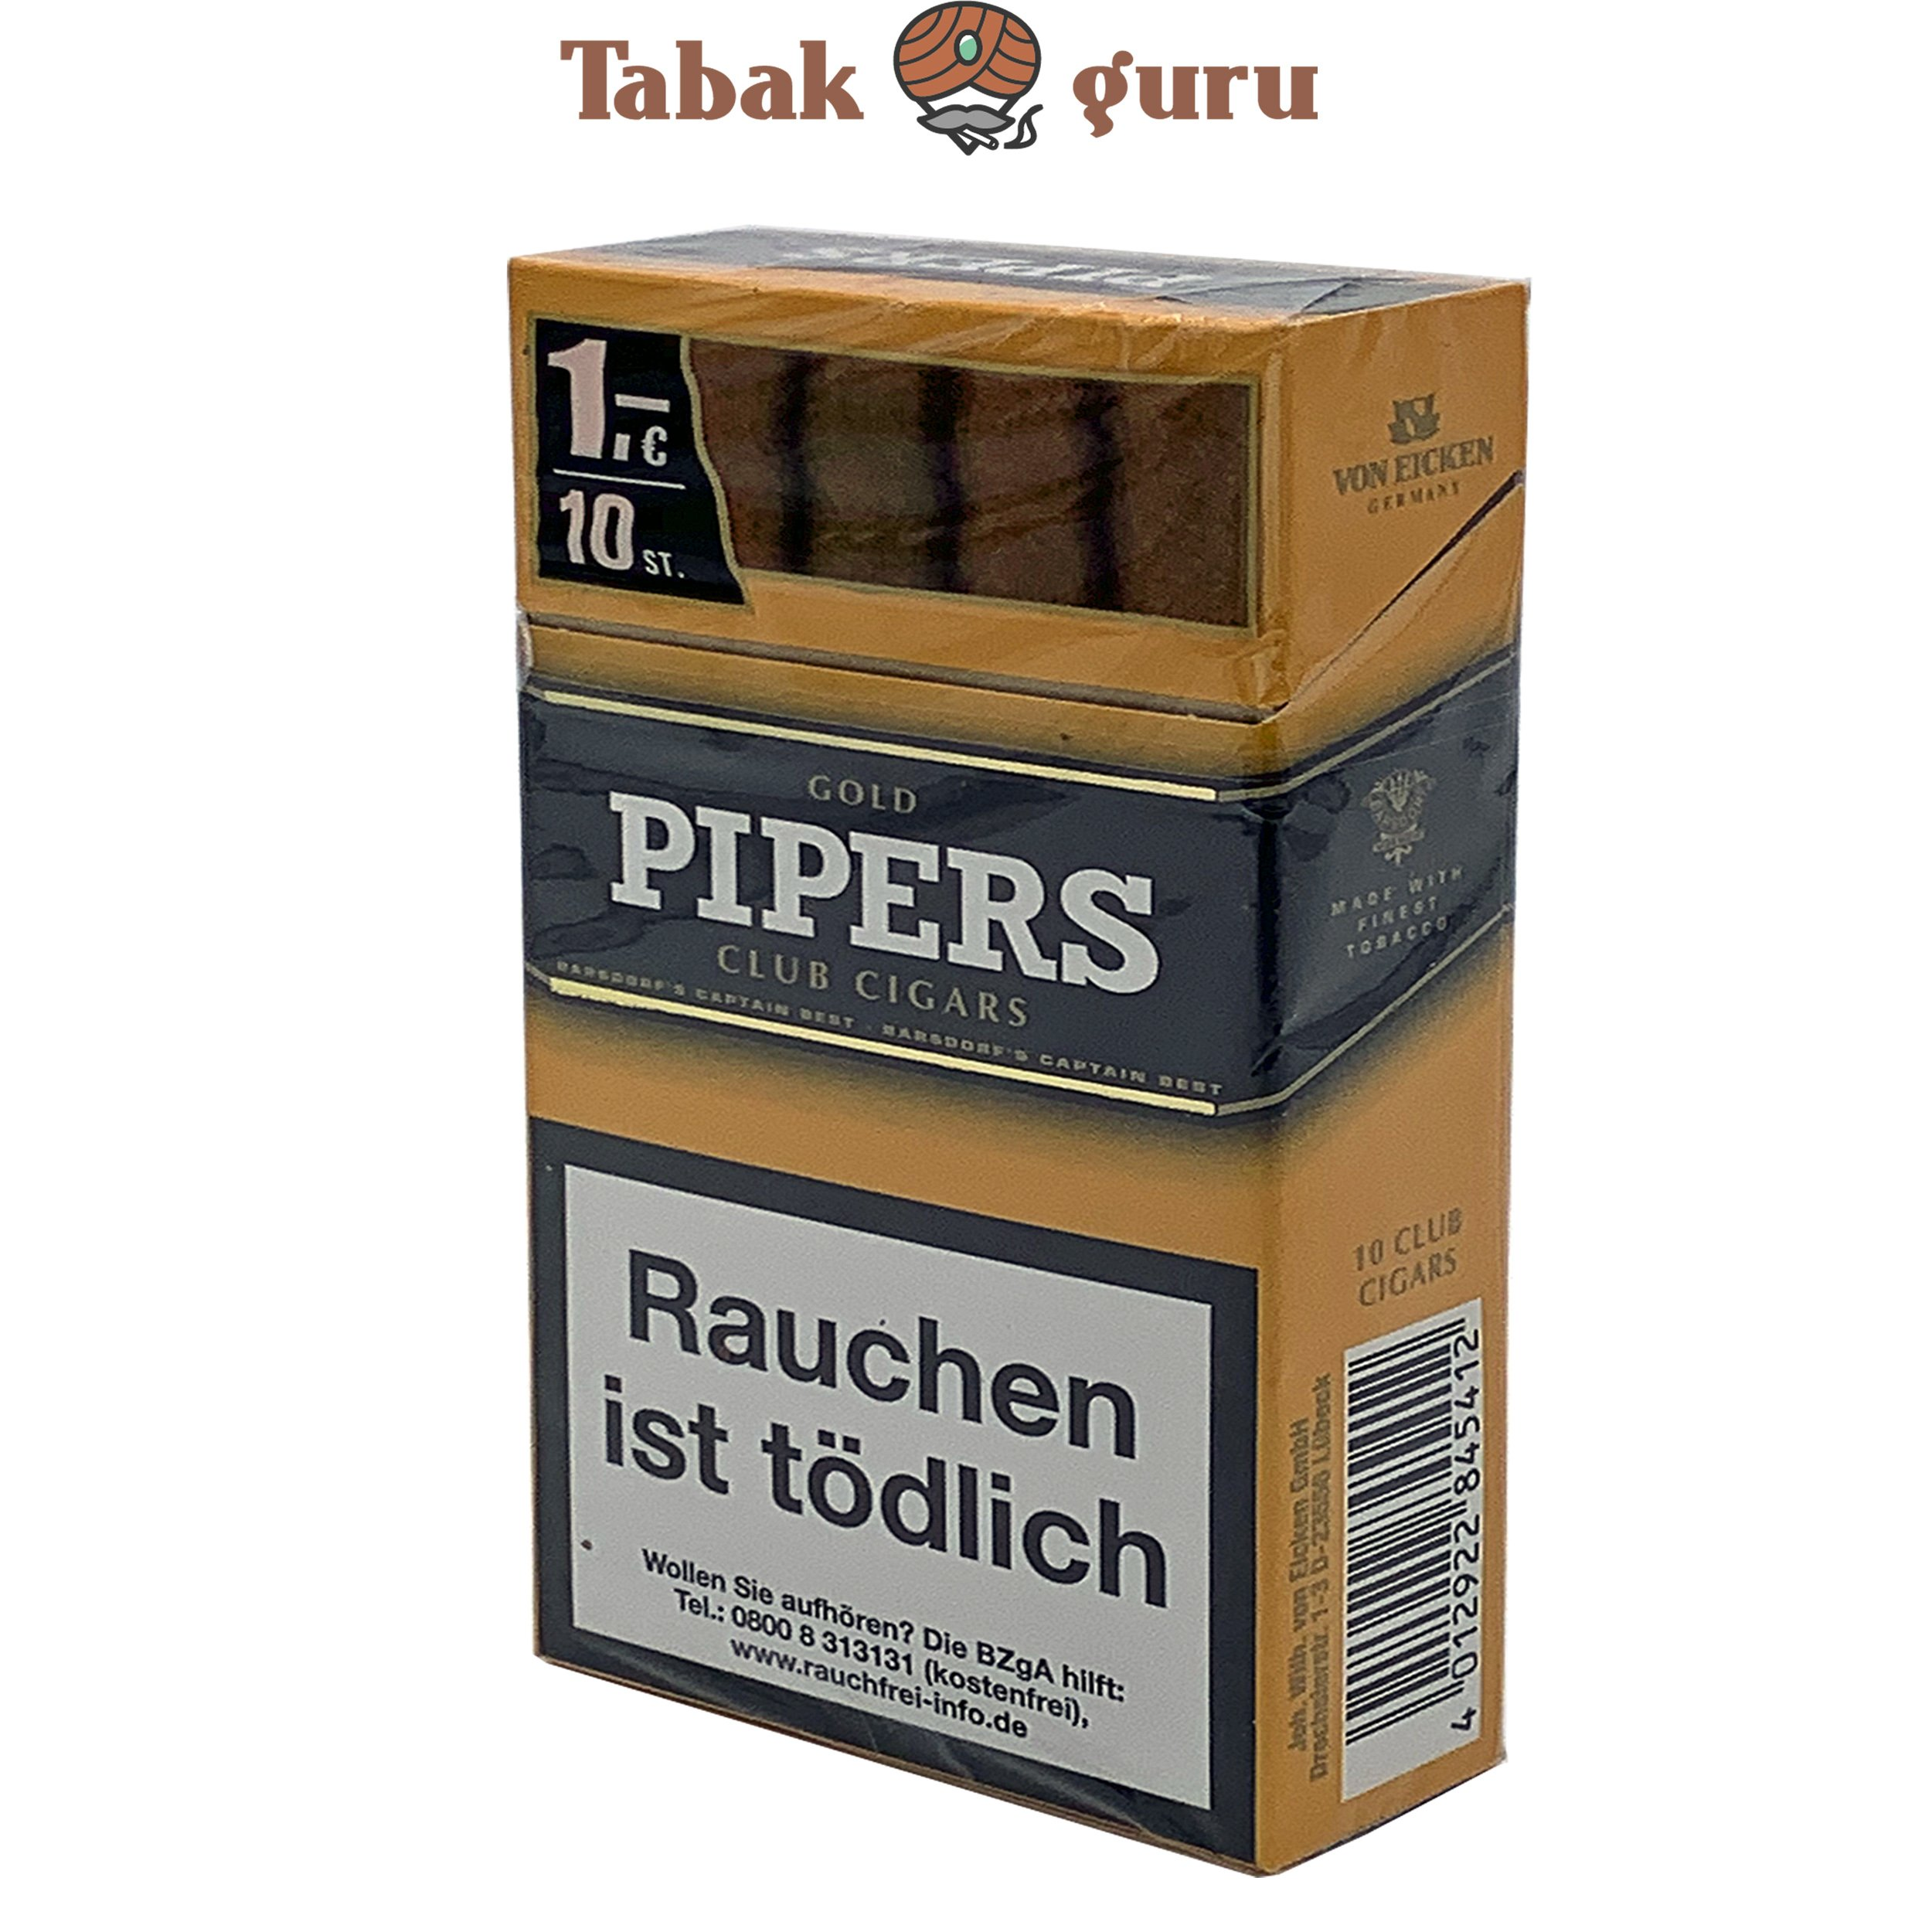 Pipers Club Cigars Gold - Vanilla (10 Zigarren)